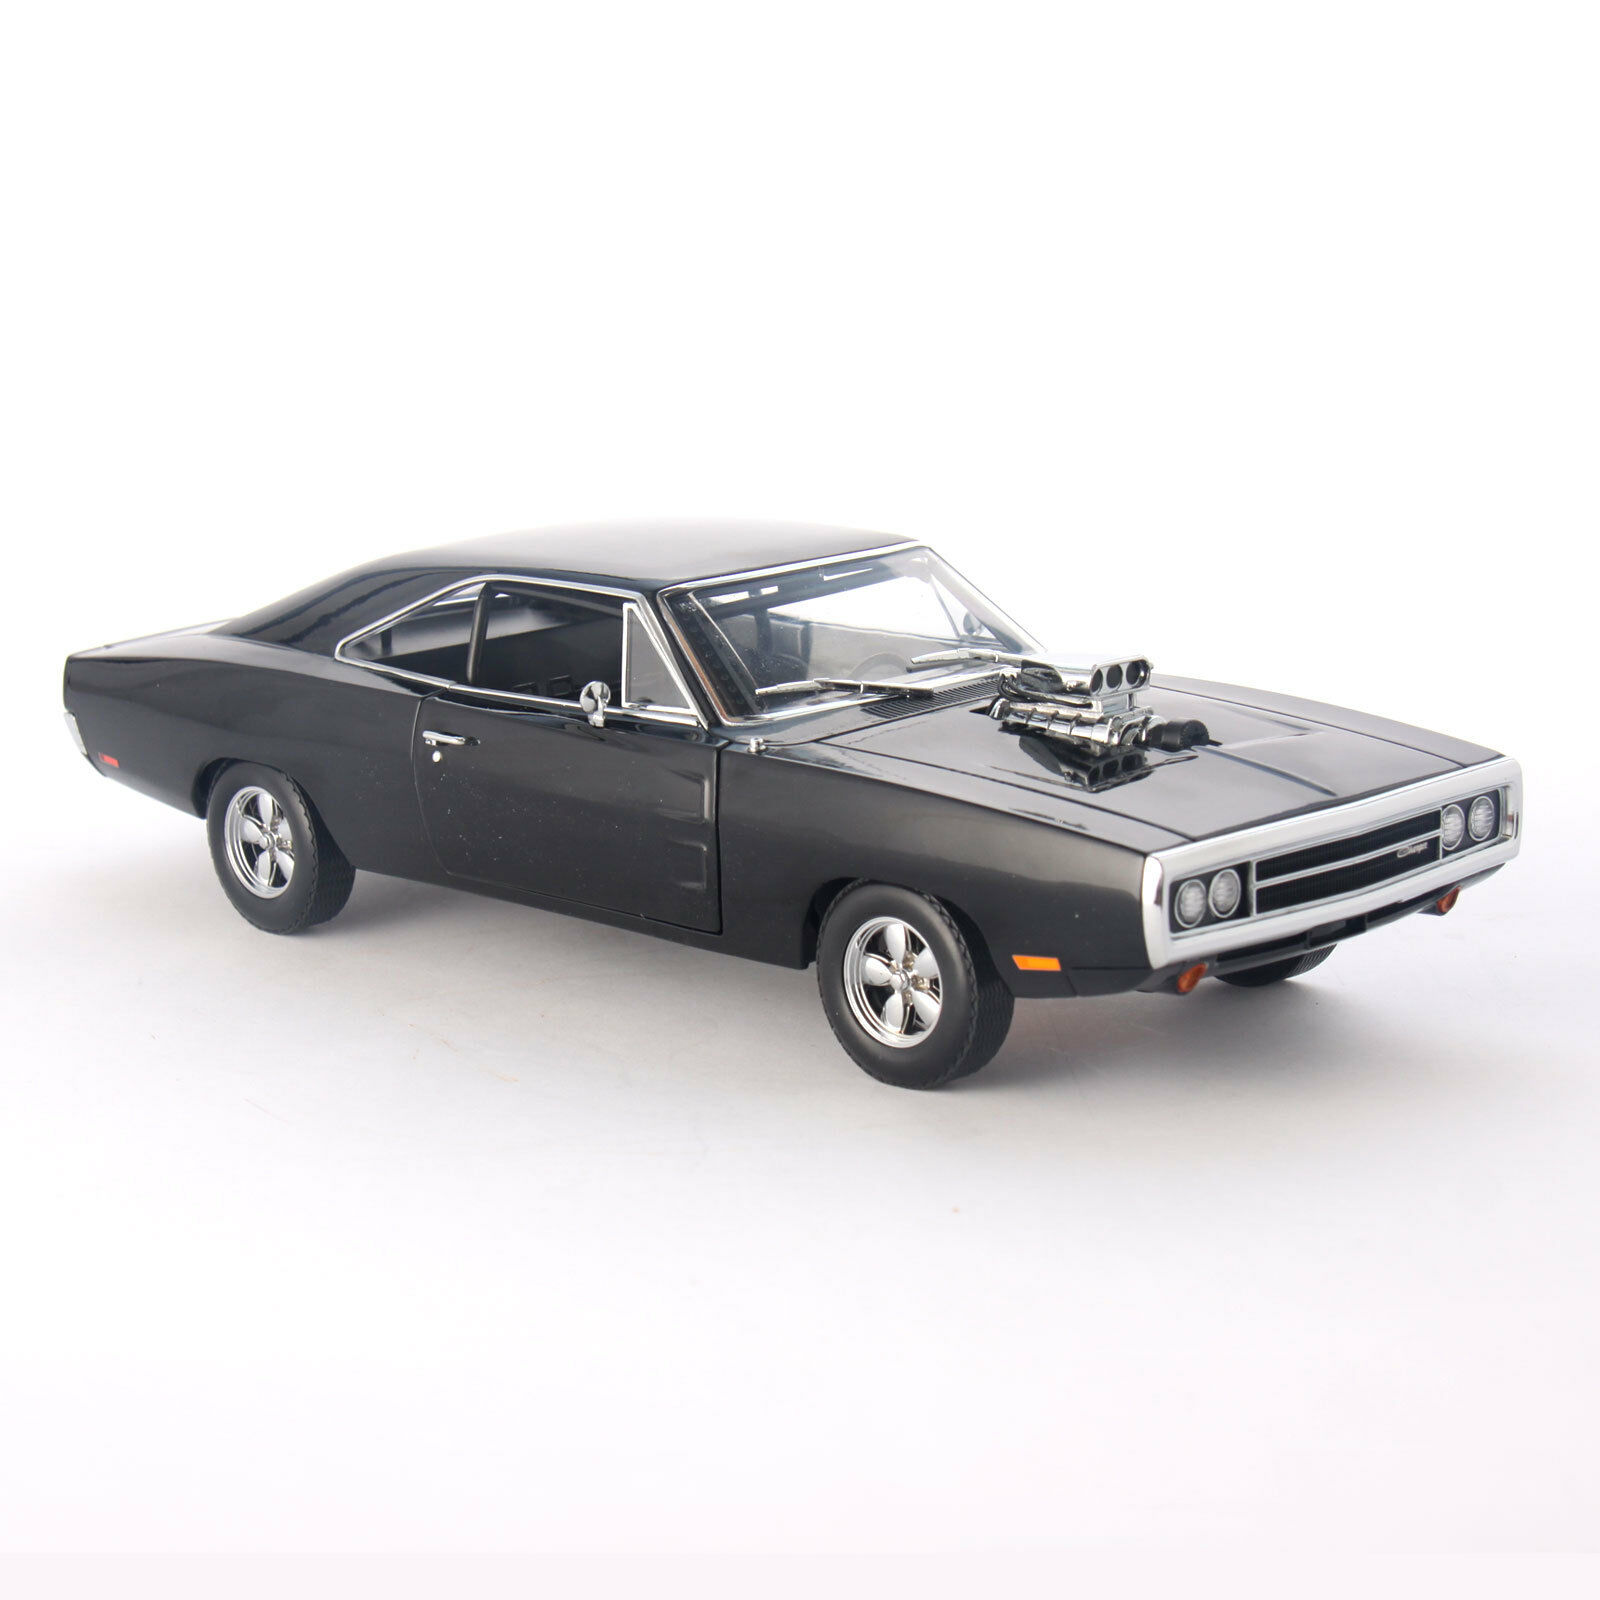 Fast and Furious Dom's 1970 Dodge Charger 1 18 Scale Diecast Car Model Replica